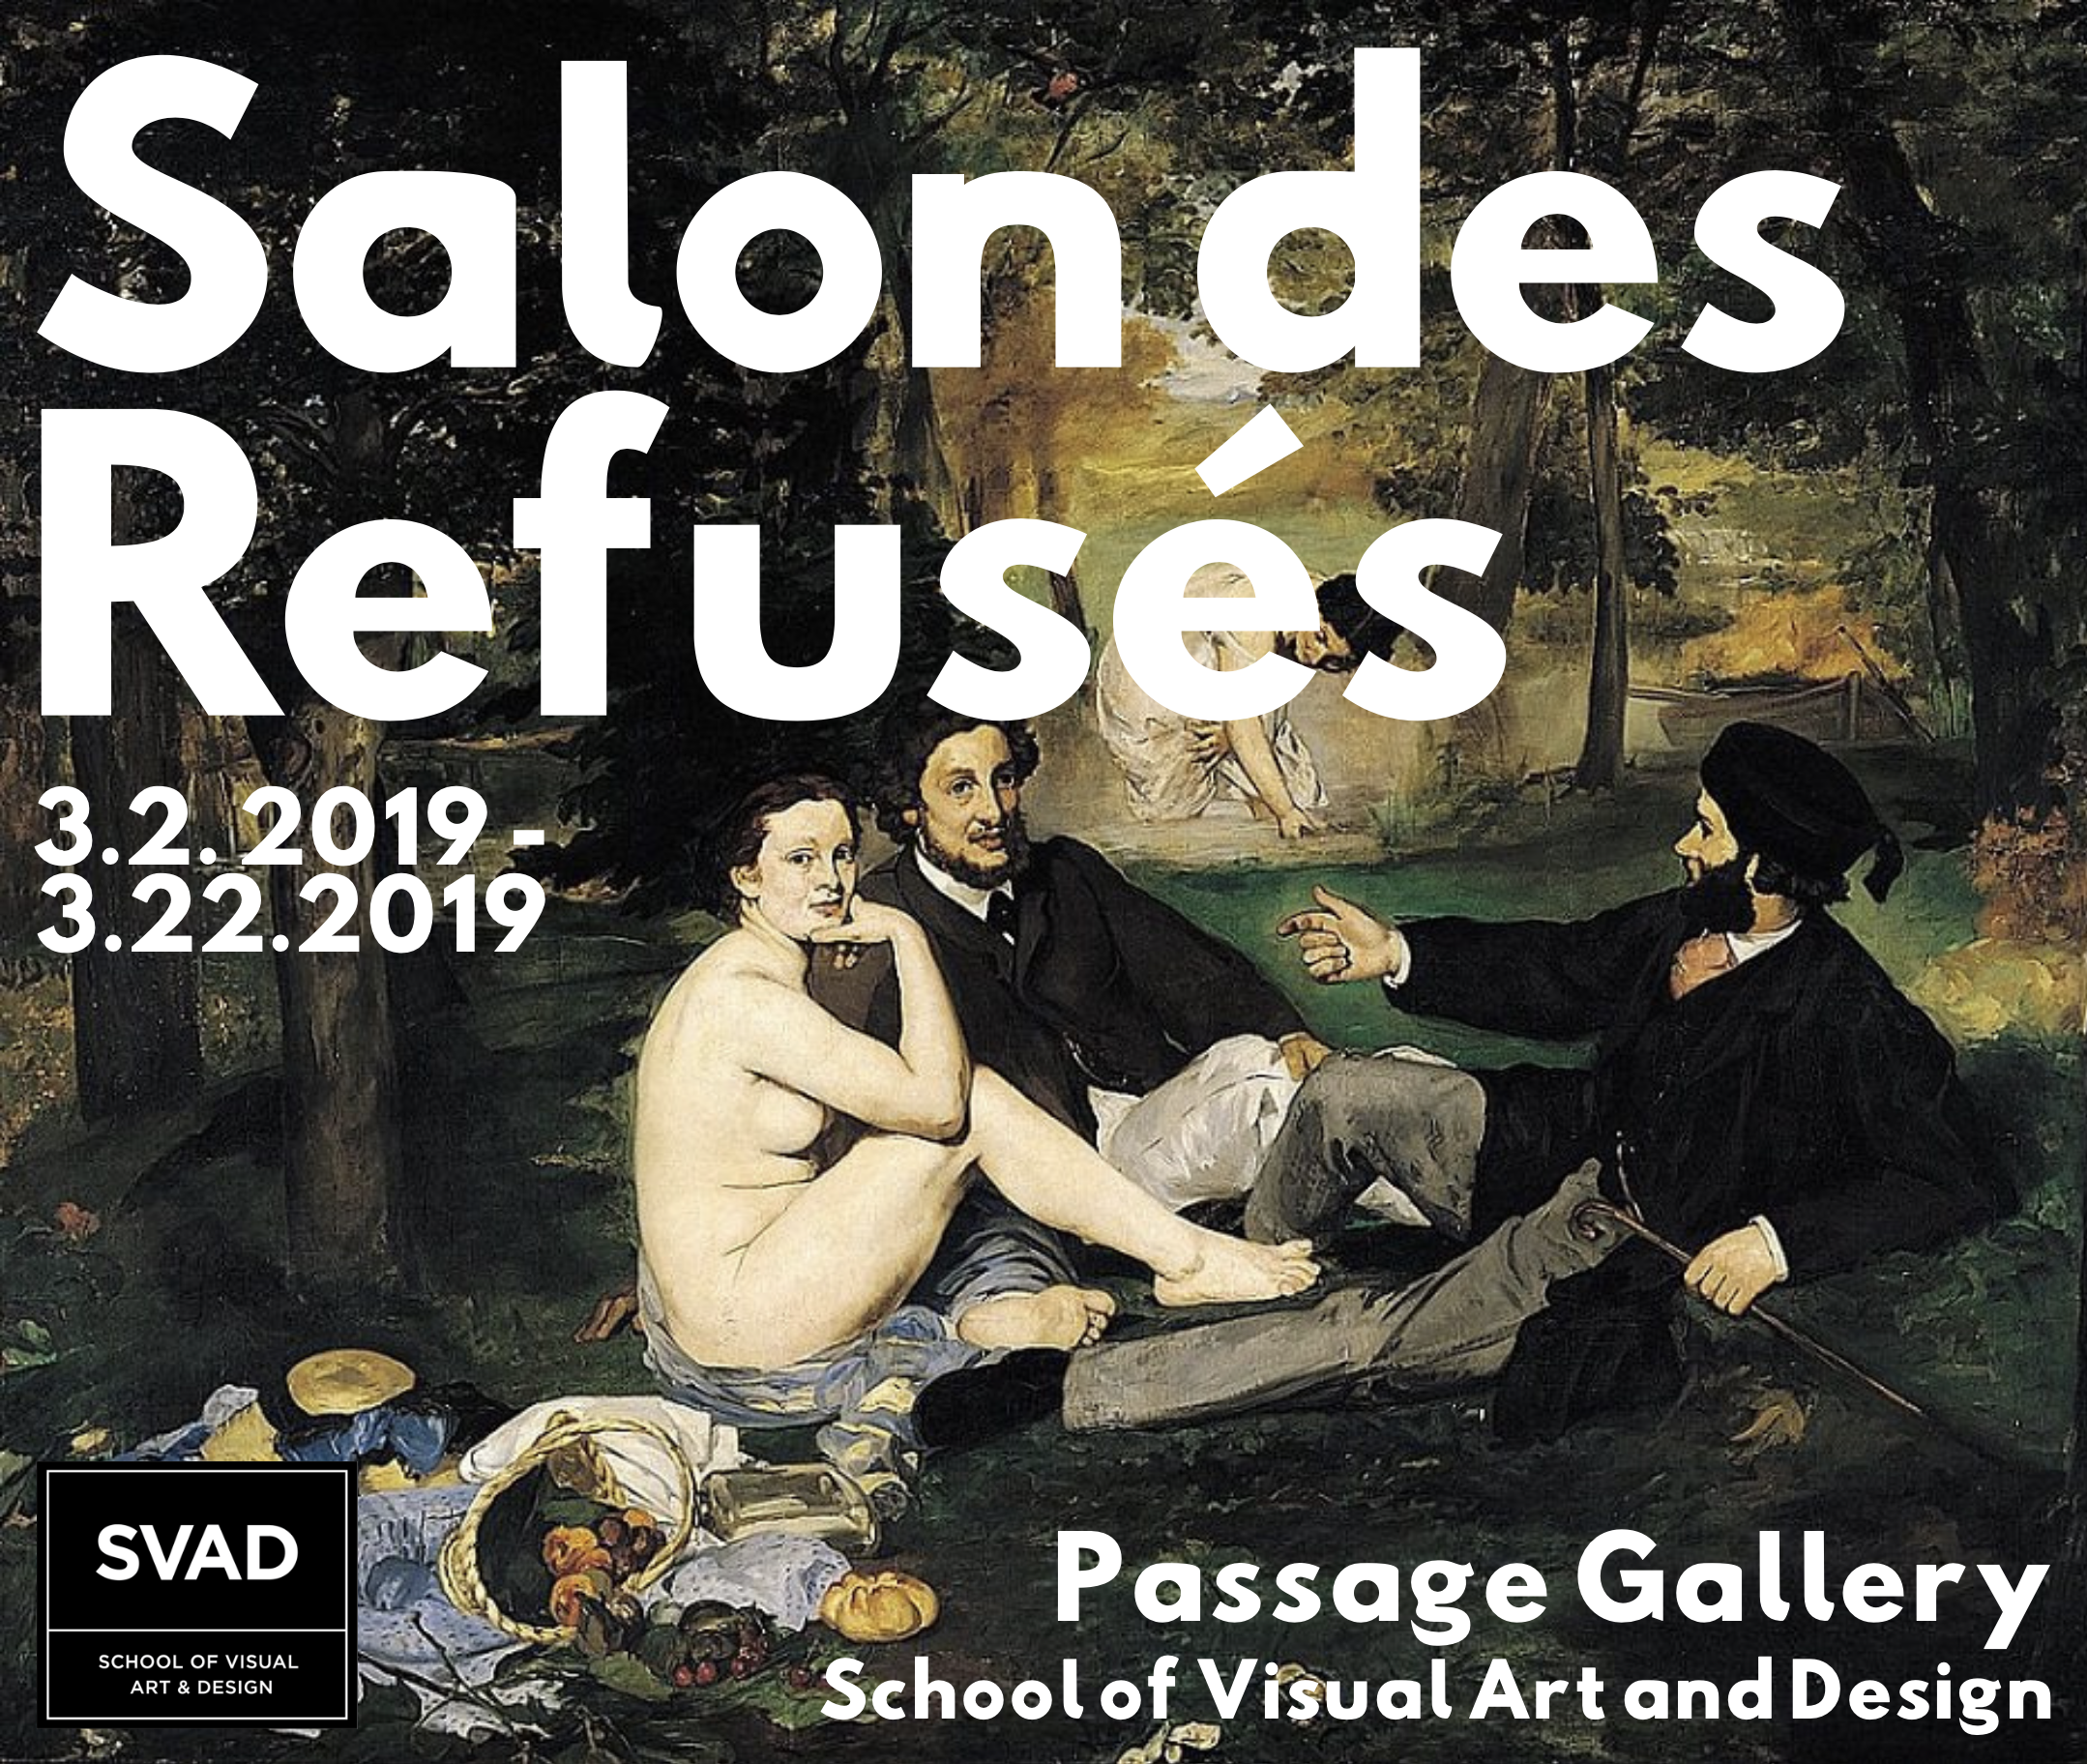 salon des refuses graphic 2019.png